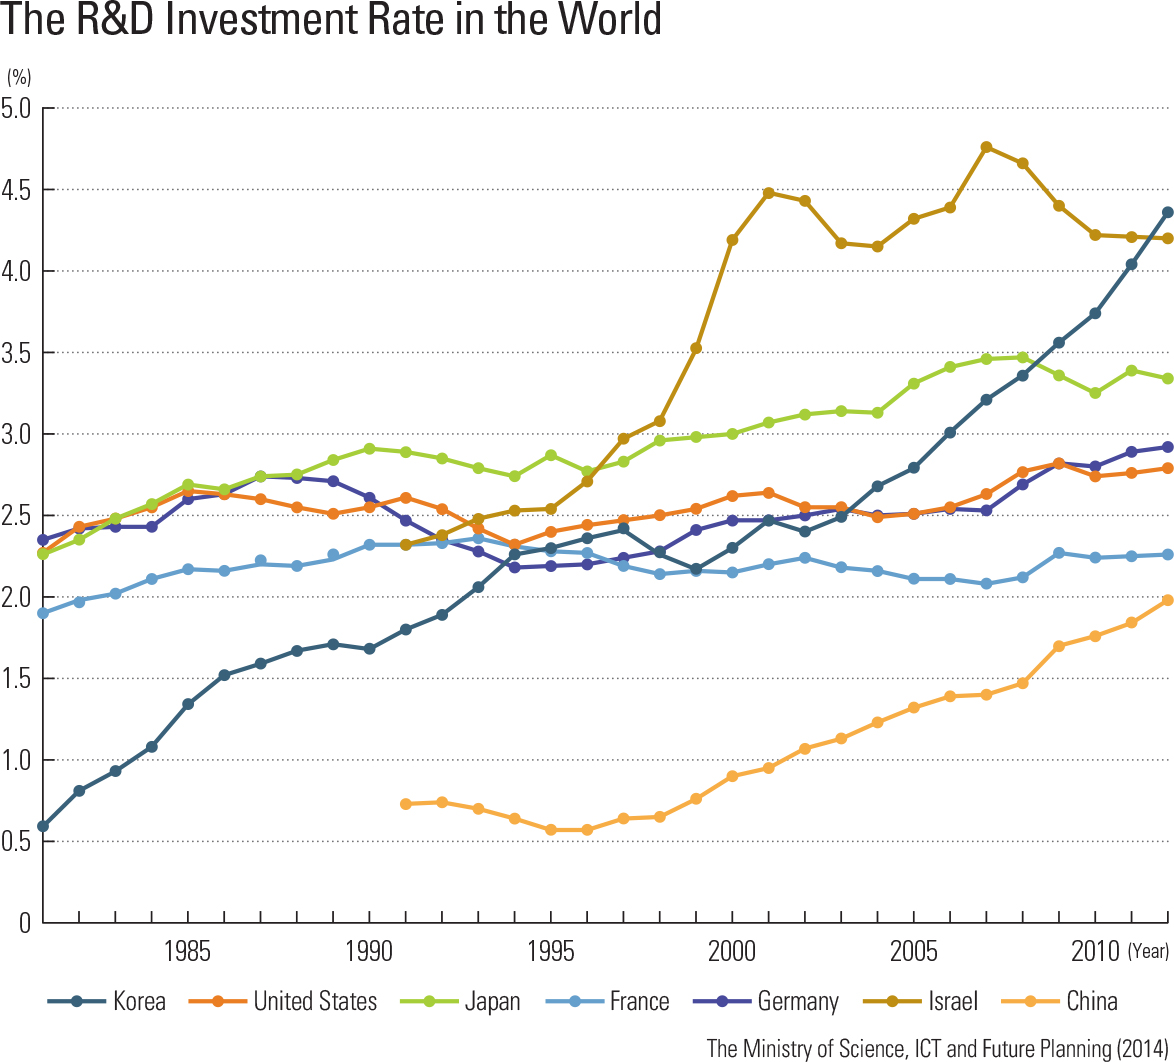 The R&D Investment Rate in the World